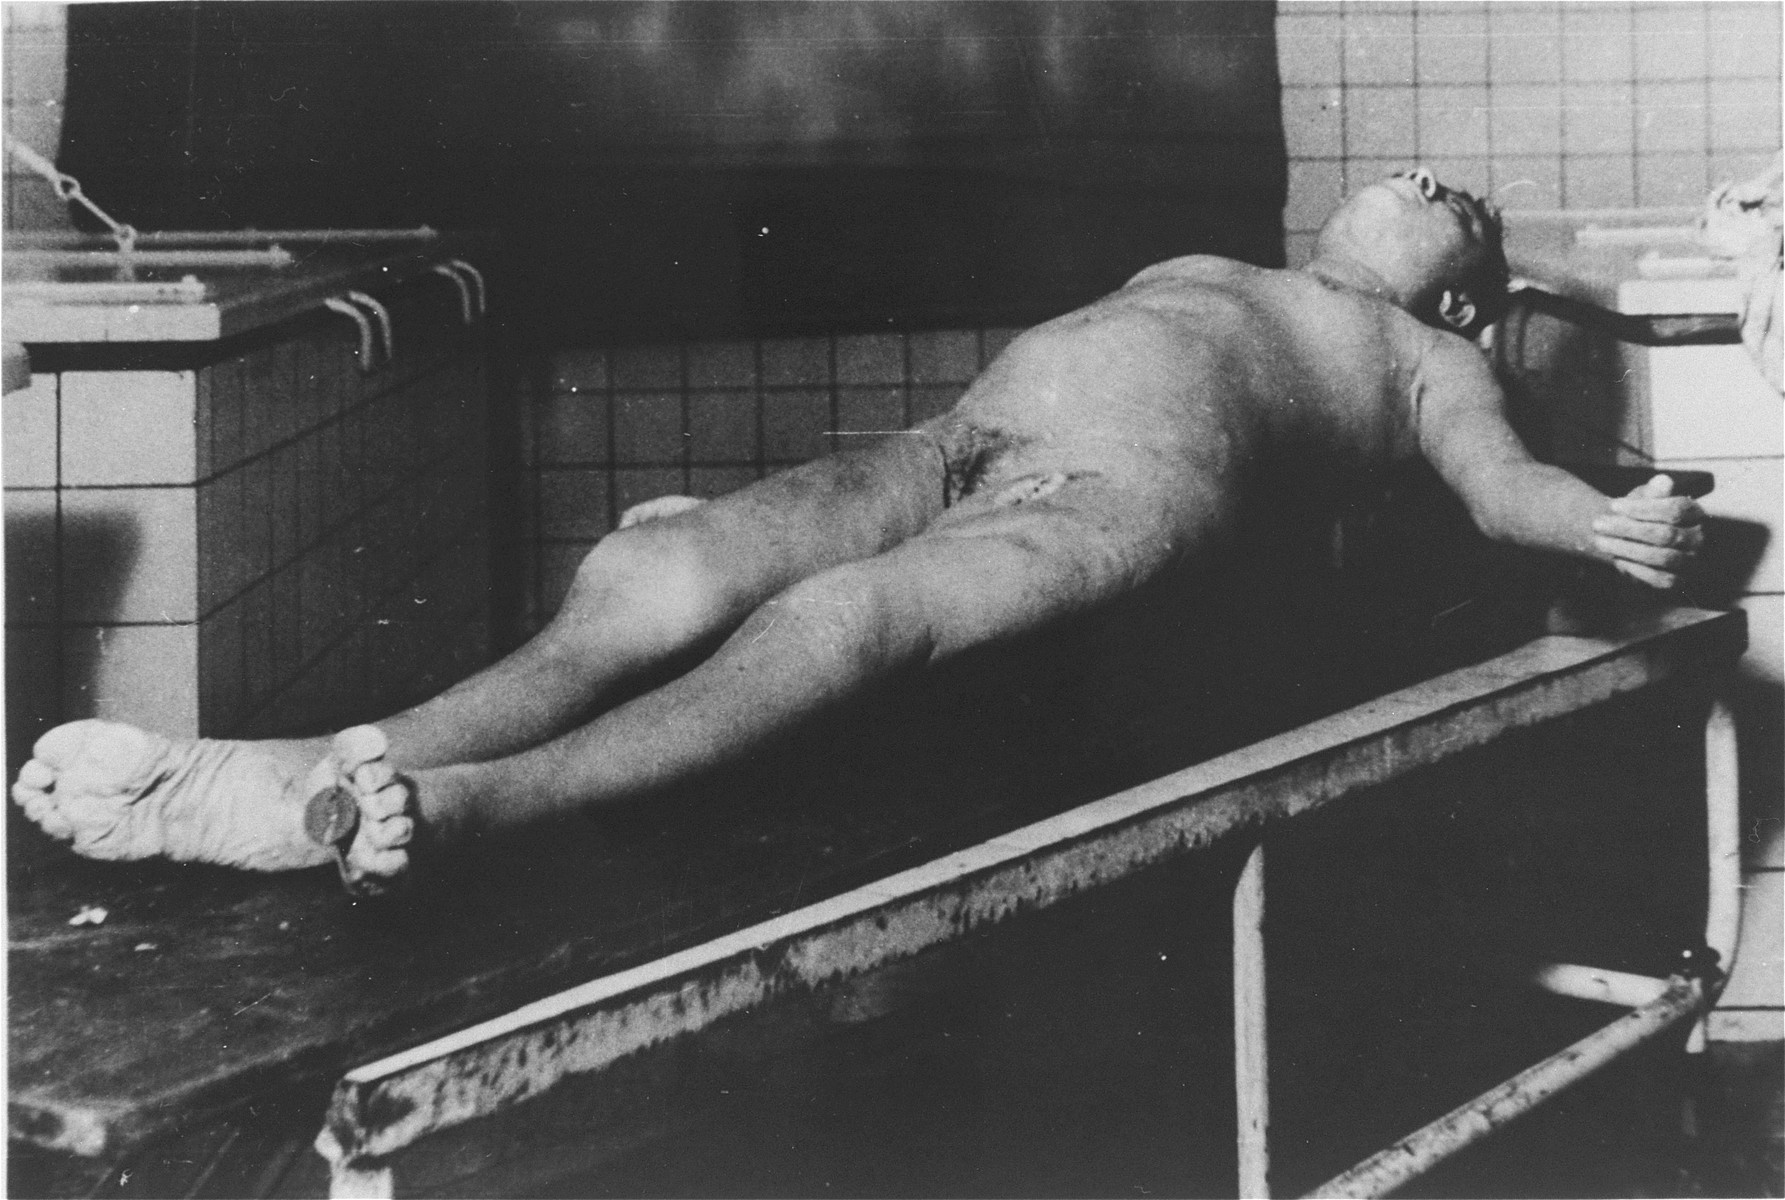 """The corpse of a Jewish woman found in an alcohol-filled vat at the Strasbourg University Anatomical Institute.  At the end of August,1943, eighty-six Jews, including 30 women, were gassed in Natzweiler-Struthof for the purpose of constructing a collection of skulls and skeletons to be kept at the Strasbourg University Institute of Anatomy, under the directorship of August Hirt.  The individuals were """"selected"""" at Auschwitz for their special bone structure and transferred to Natzweiler, where SS Captain Josef Kramer, the commandant of the camp, oversaw the operation.  The corpses then remained in vats of alcohol for over a year, the project envisioned by Hirt having never been completed.  When Allied forces approached Strasbourg in November 1944, SS administrators were unaware that evidence of the crime still existed at the Institute, and only at the last minute ordered the bodies destroyed.  This operation failed, however, and 16-17 of the bodies fell into Allied hands. [Klarsfeld, S., ed. The Struthof Album, 1985]"""